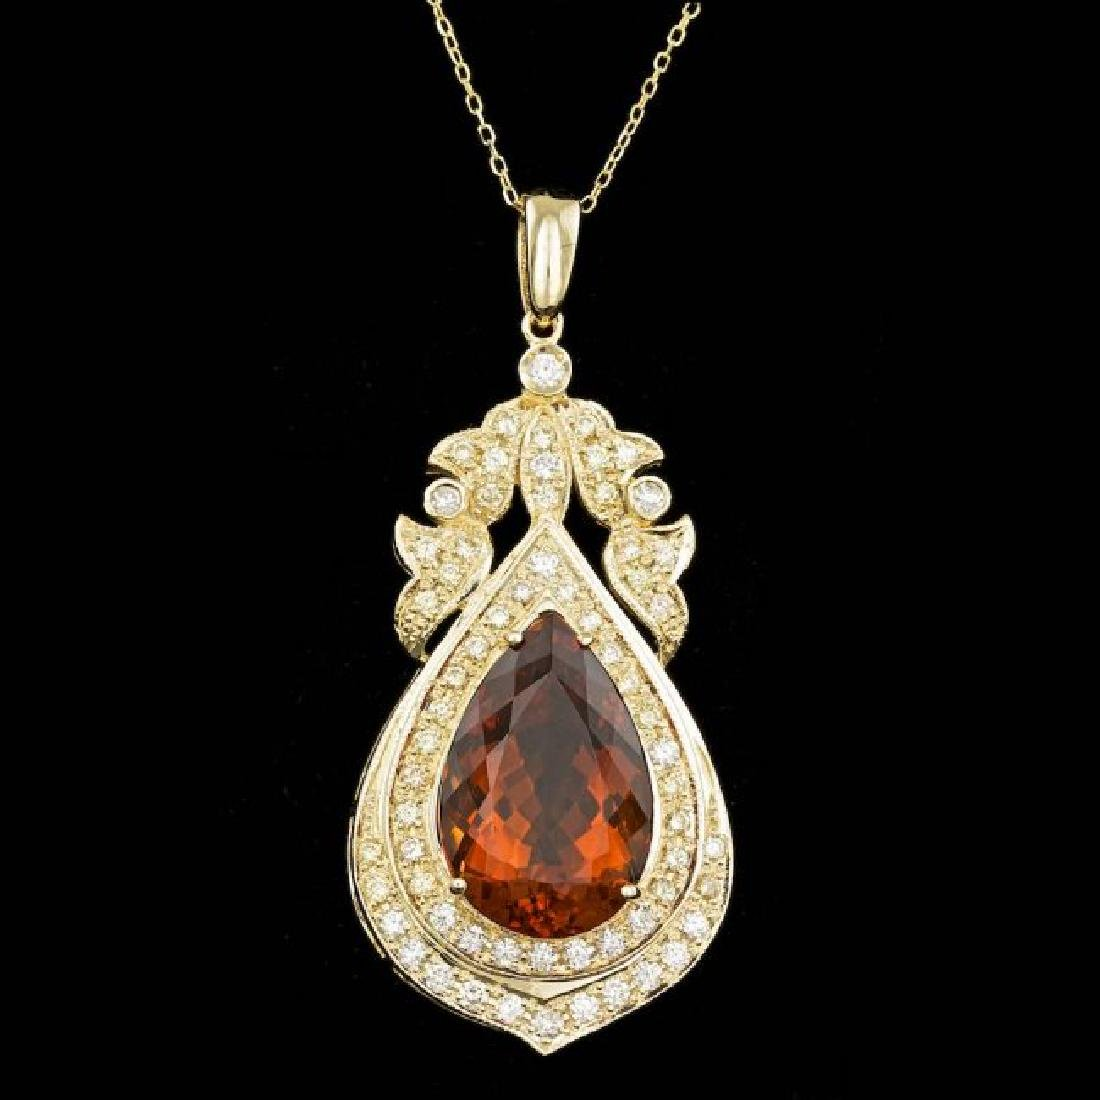 14k Gold 14.50ct Citrine 1.70ct Diamond Pendant